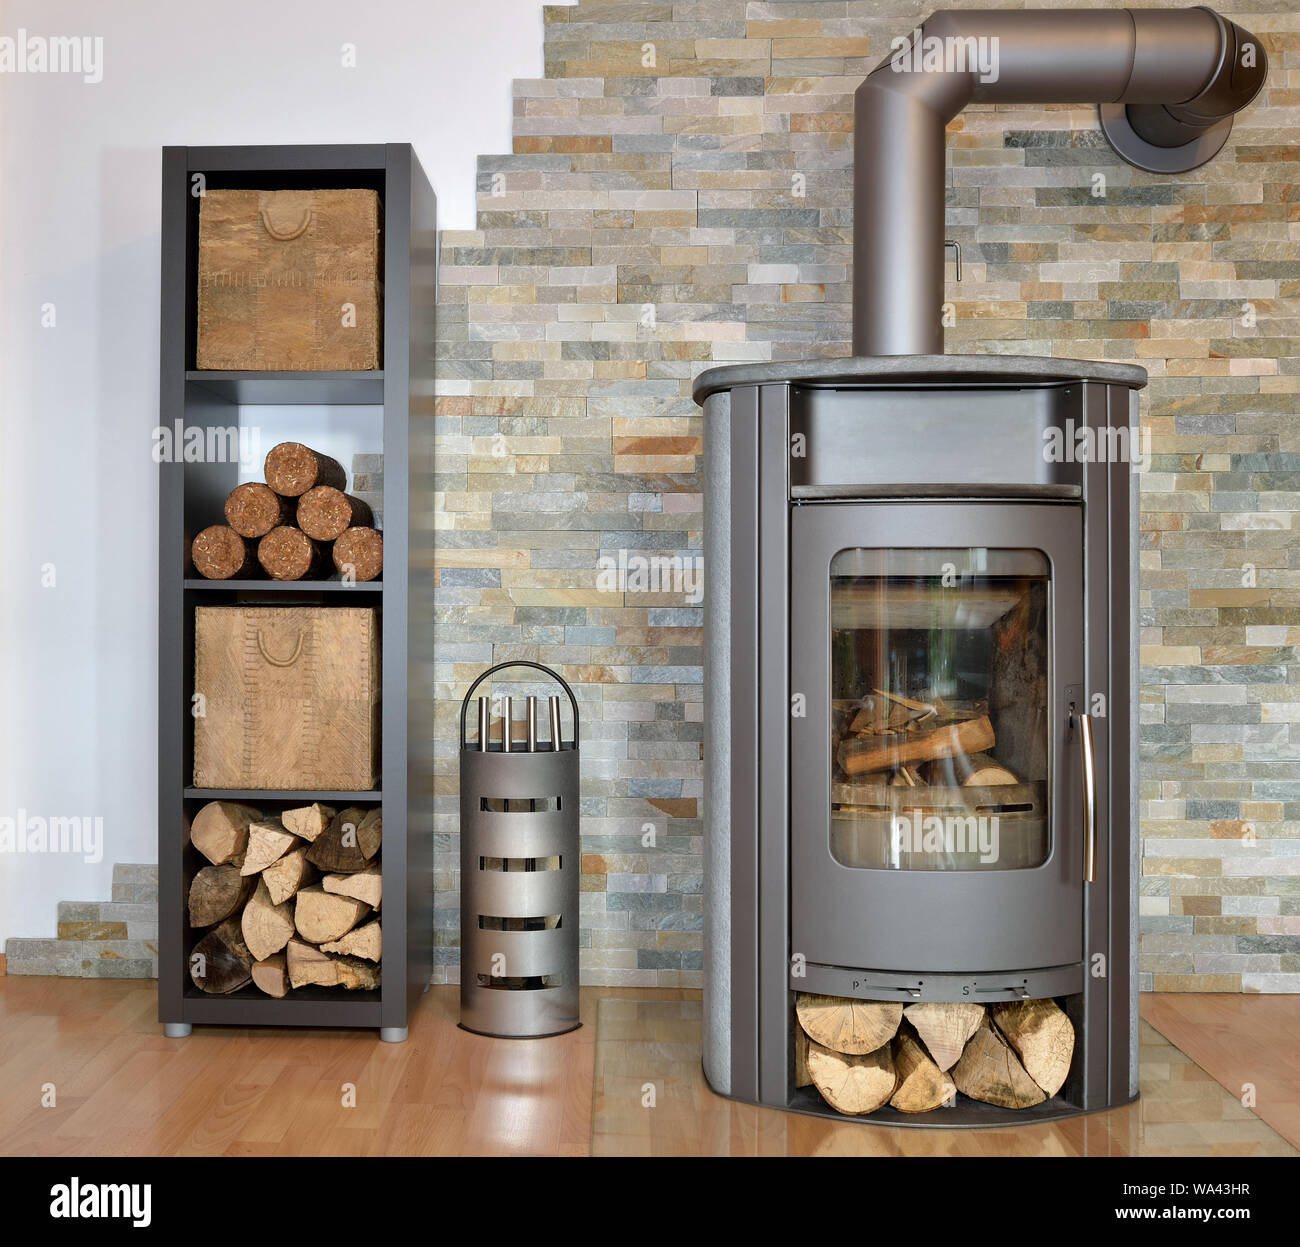 Kaminofen mit Holz und Rindenbriketts Wood burning stove with fire-wood and Stock Photo